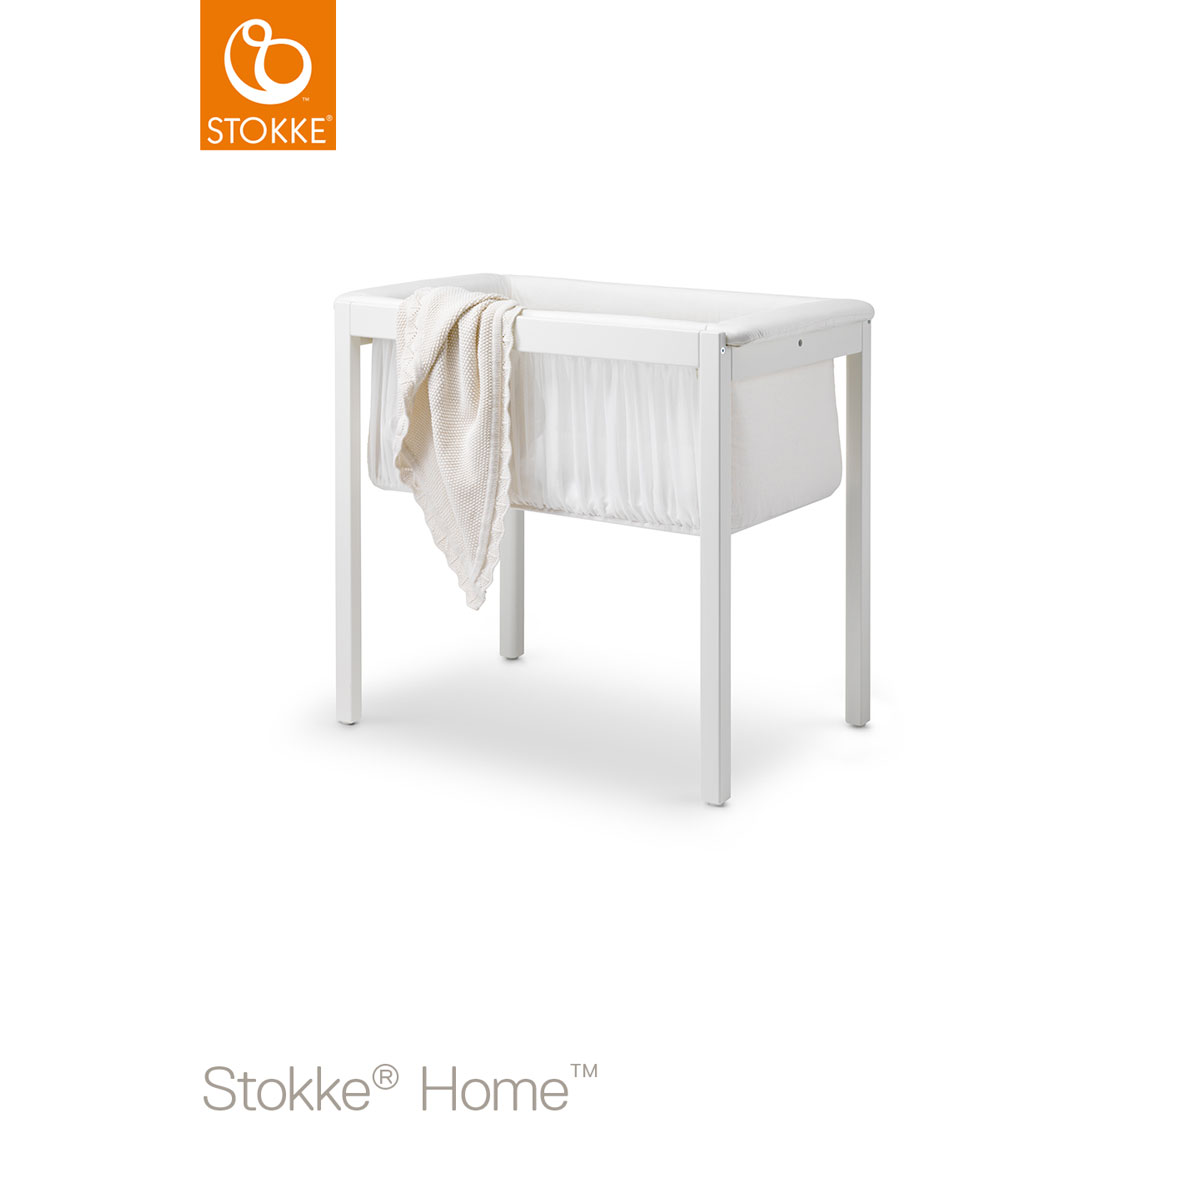 Stokke Wiege Stokke Home Bed Commode And Wieg Wit